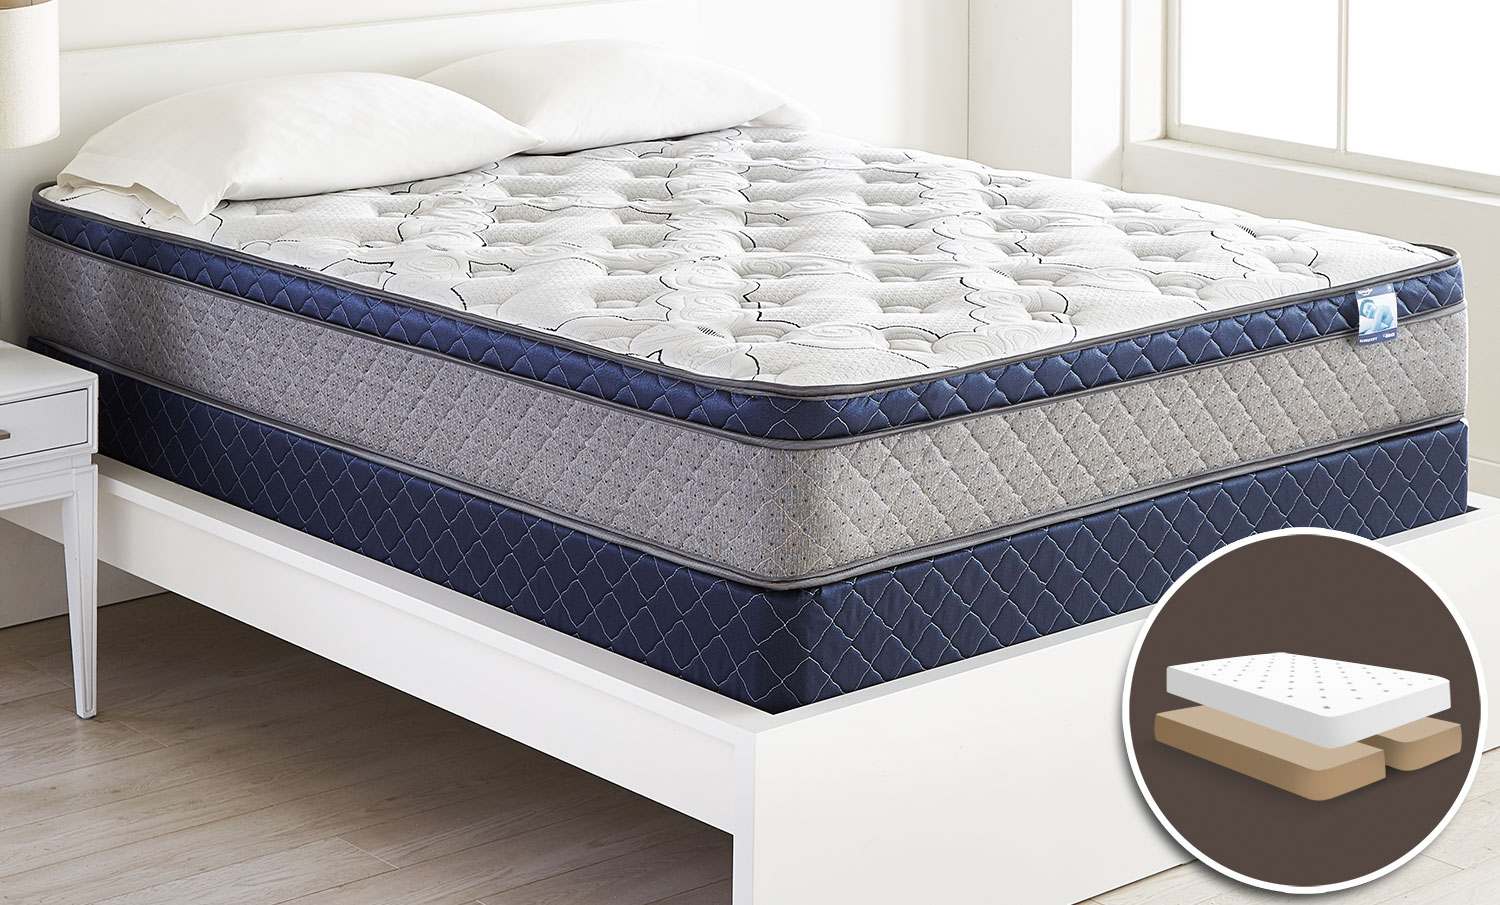 Springwall Burberry Euro-Top Firm Queen Mattress and Split Boxspring Set